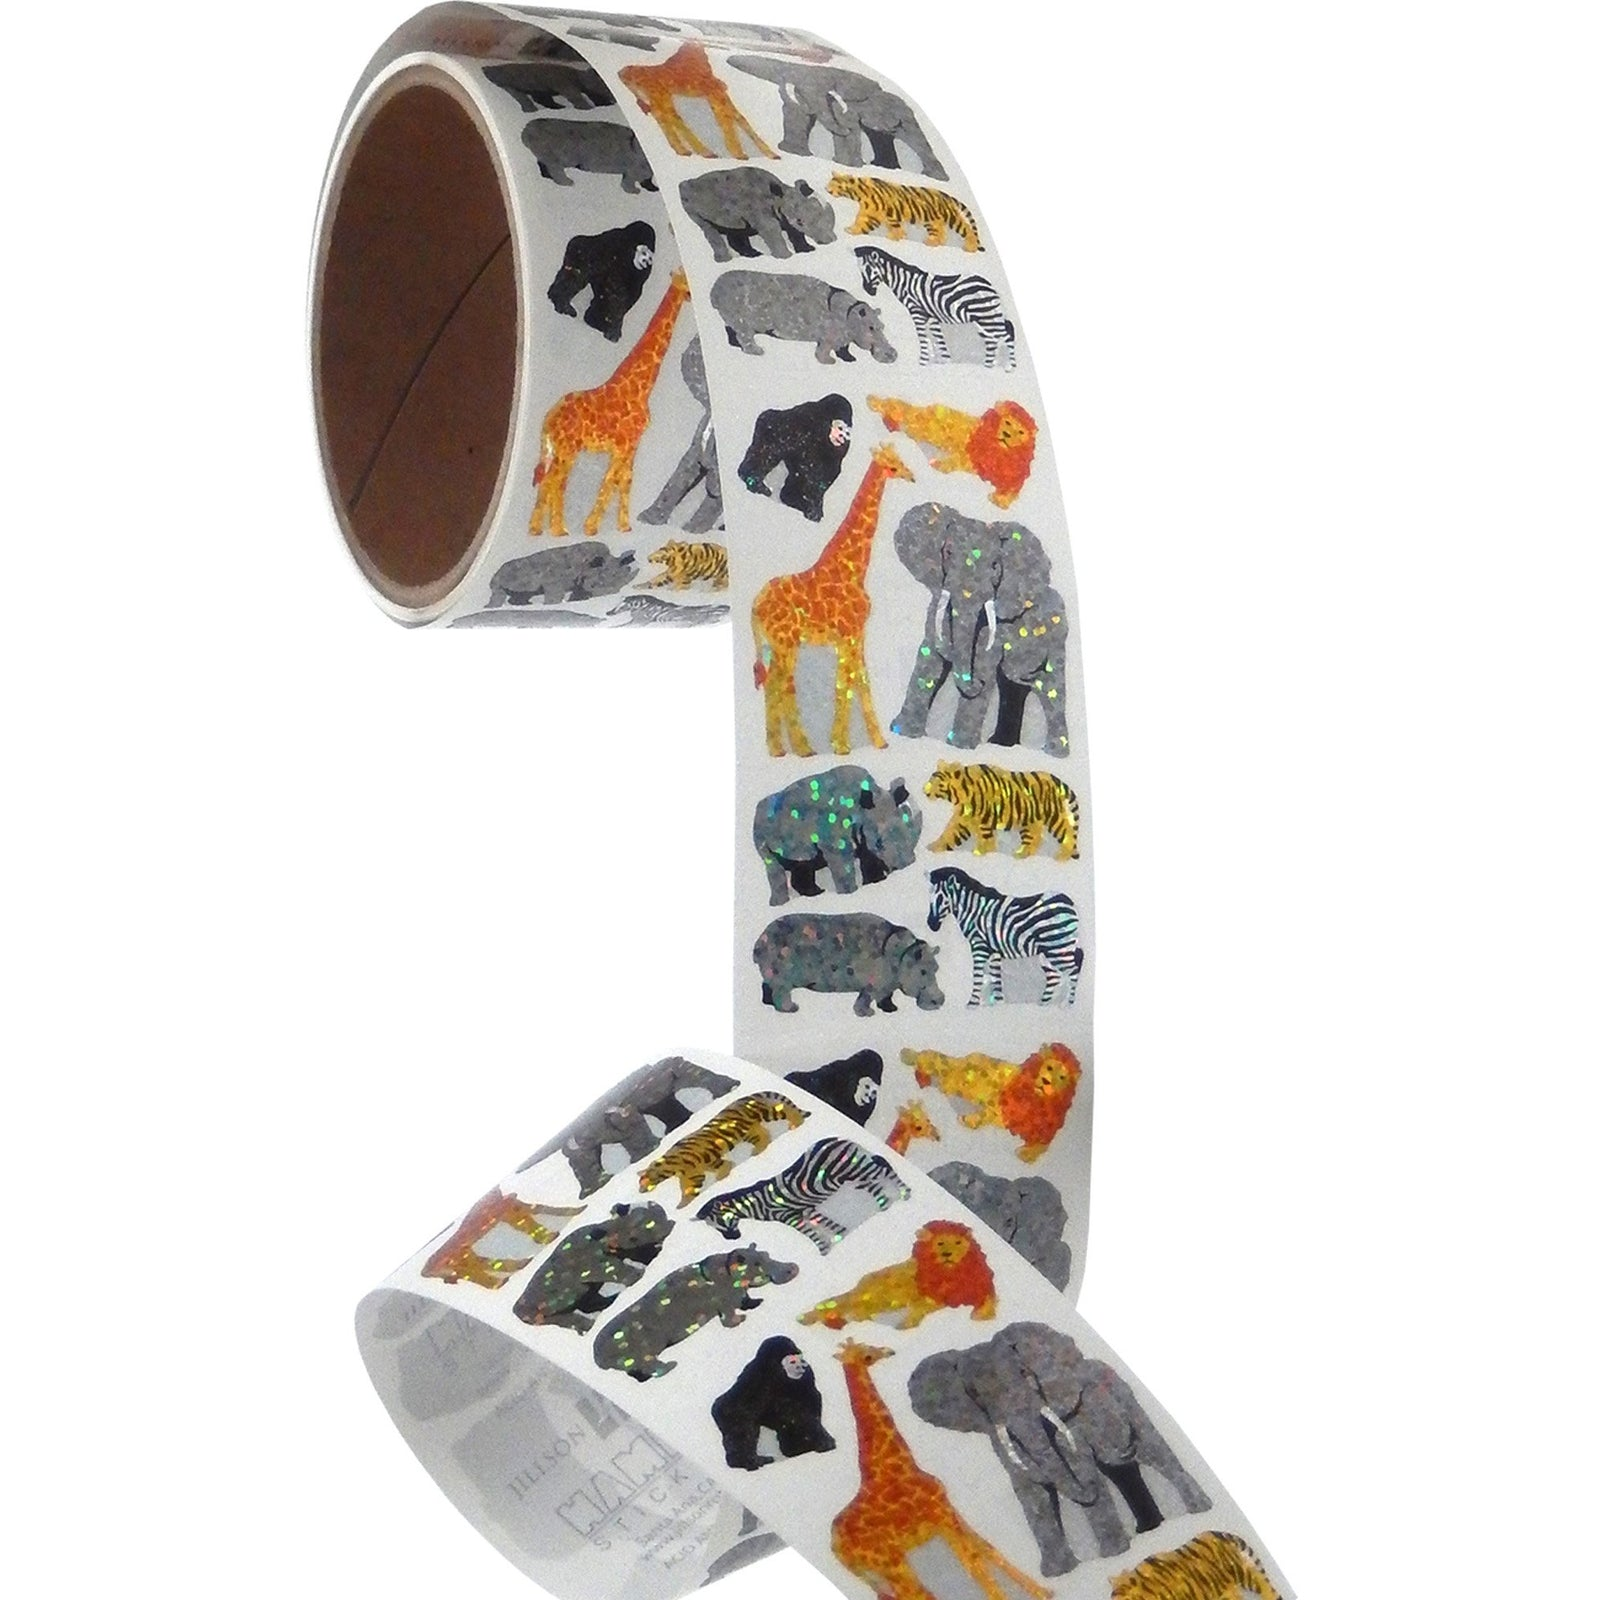 Jillson & Roberts Bulk Roll Prismatic Stickers, Safari Animals (50 Repeats) - Present Paper